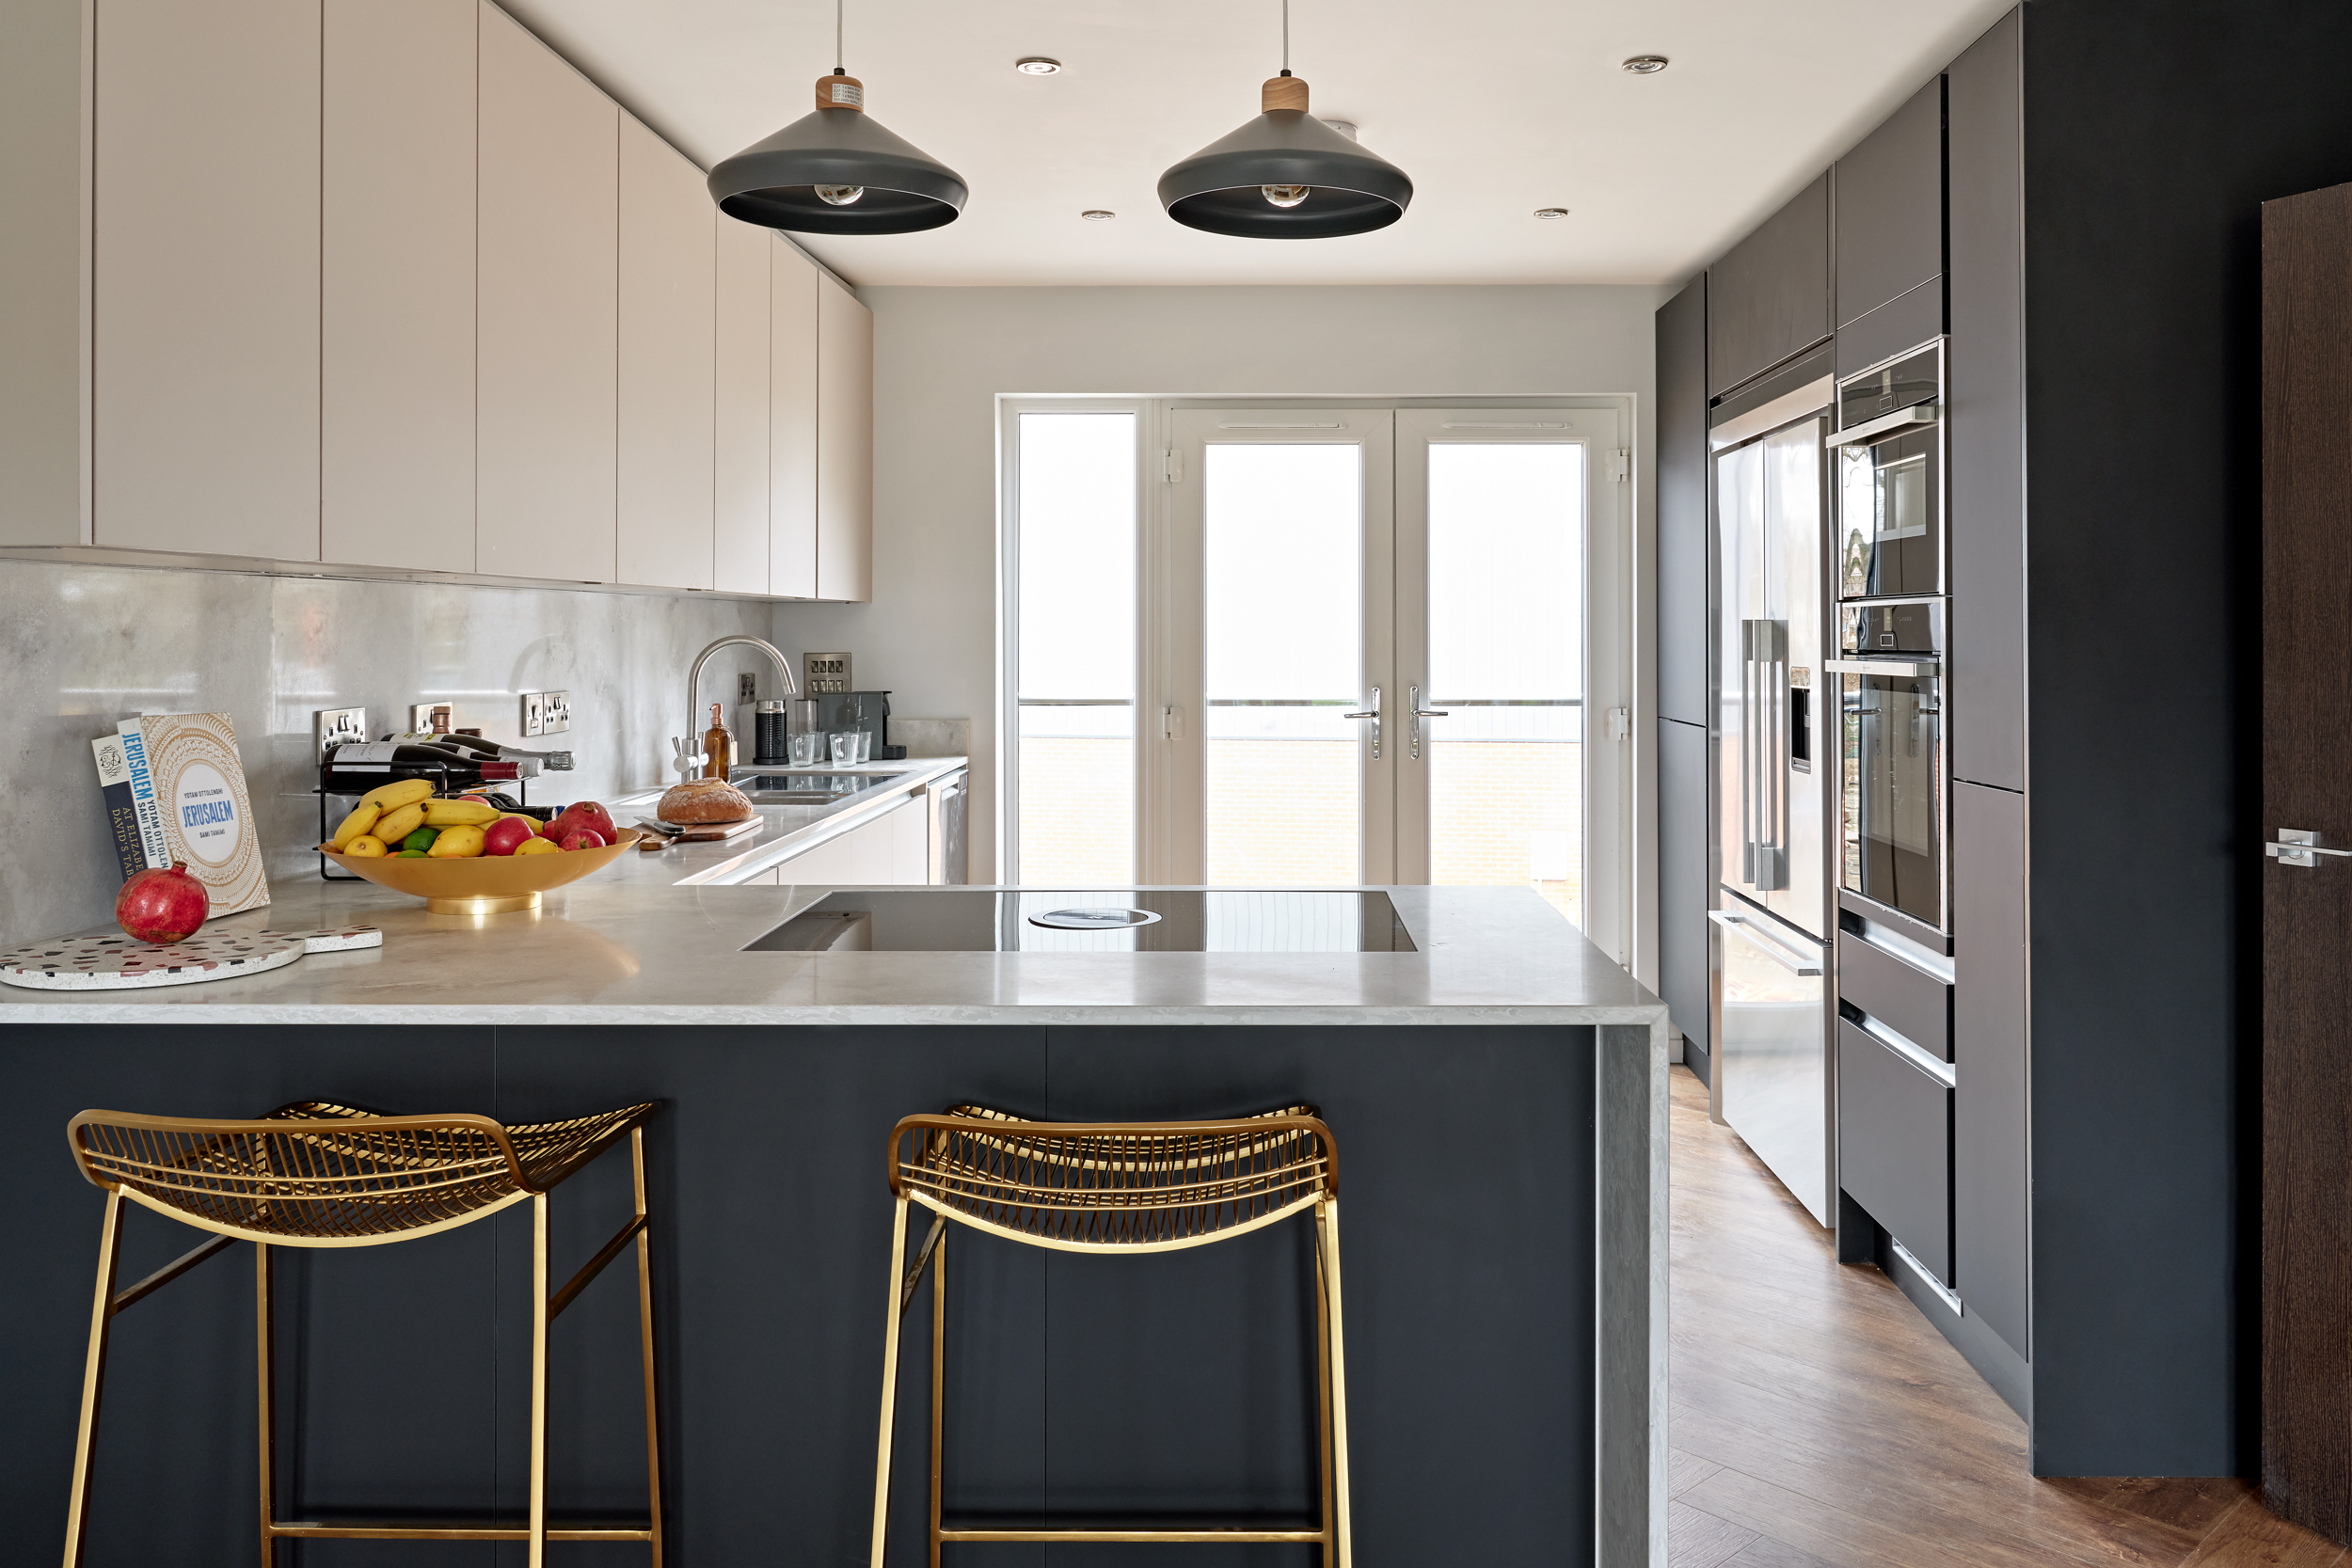 The kitchen at Lime Grove, equipped with state-of-the-art fittings and furniture from Fisher & Paykel and Neff Kitchen.